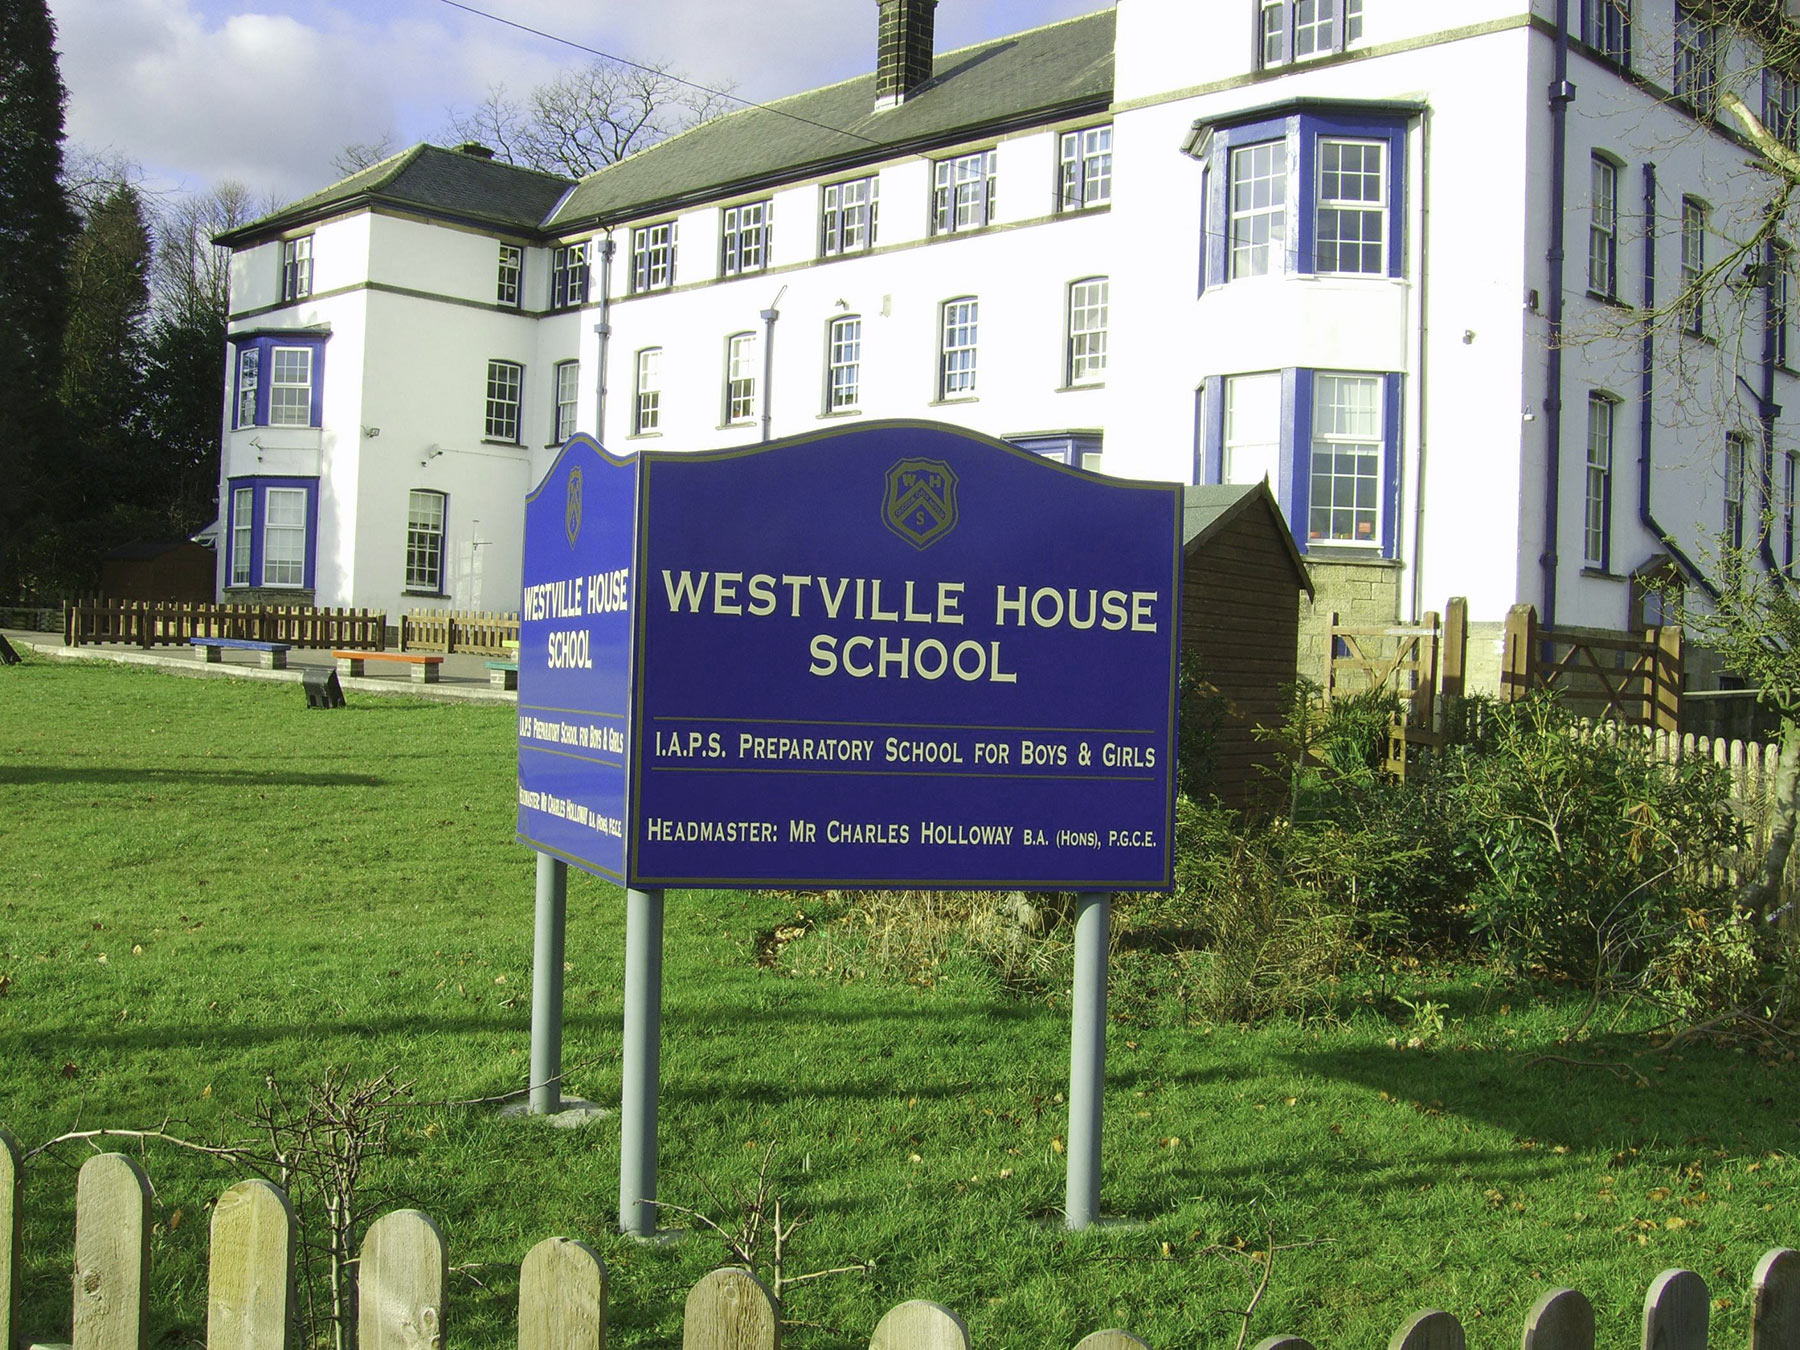 Westville House School post mounted signs from Valley Signs